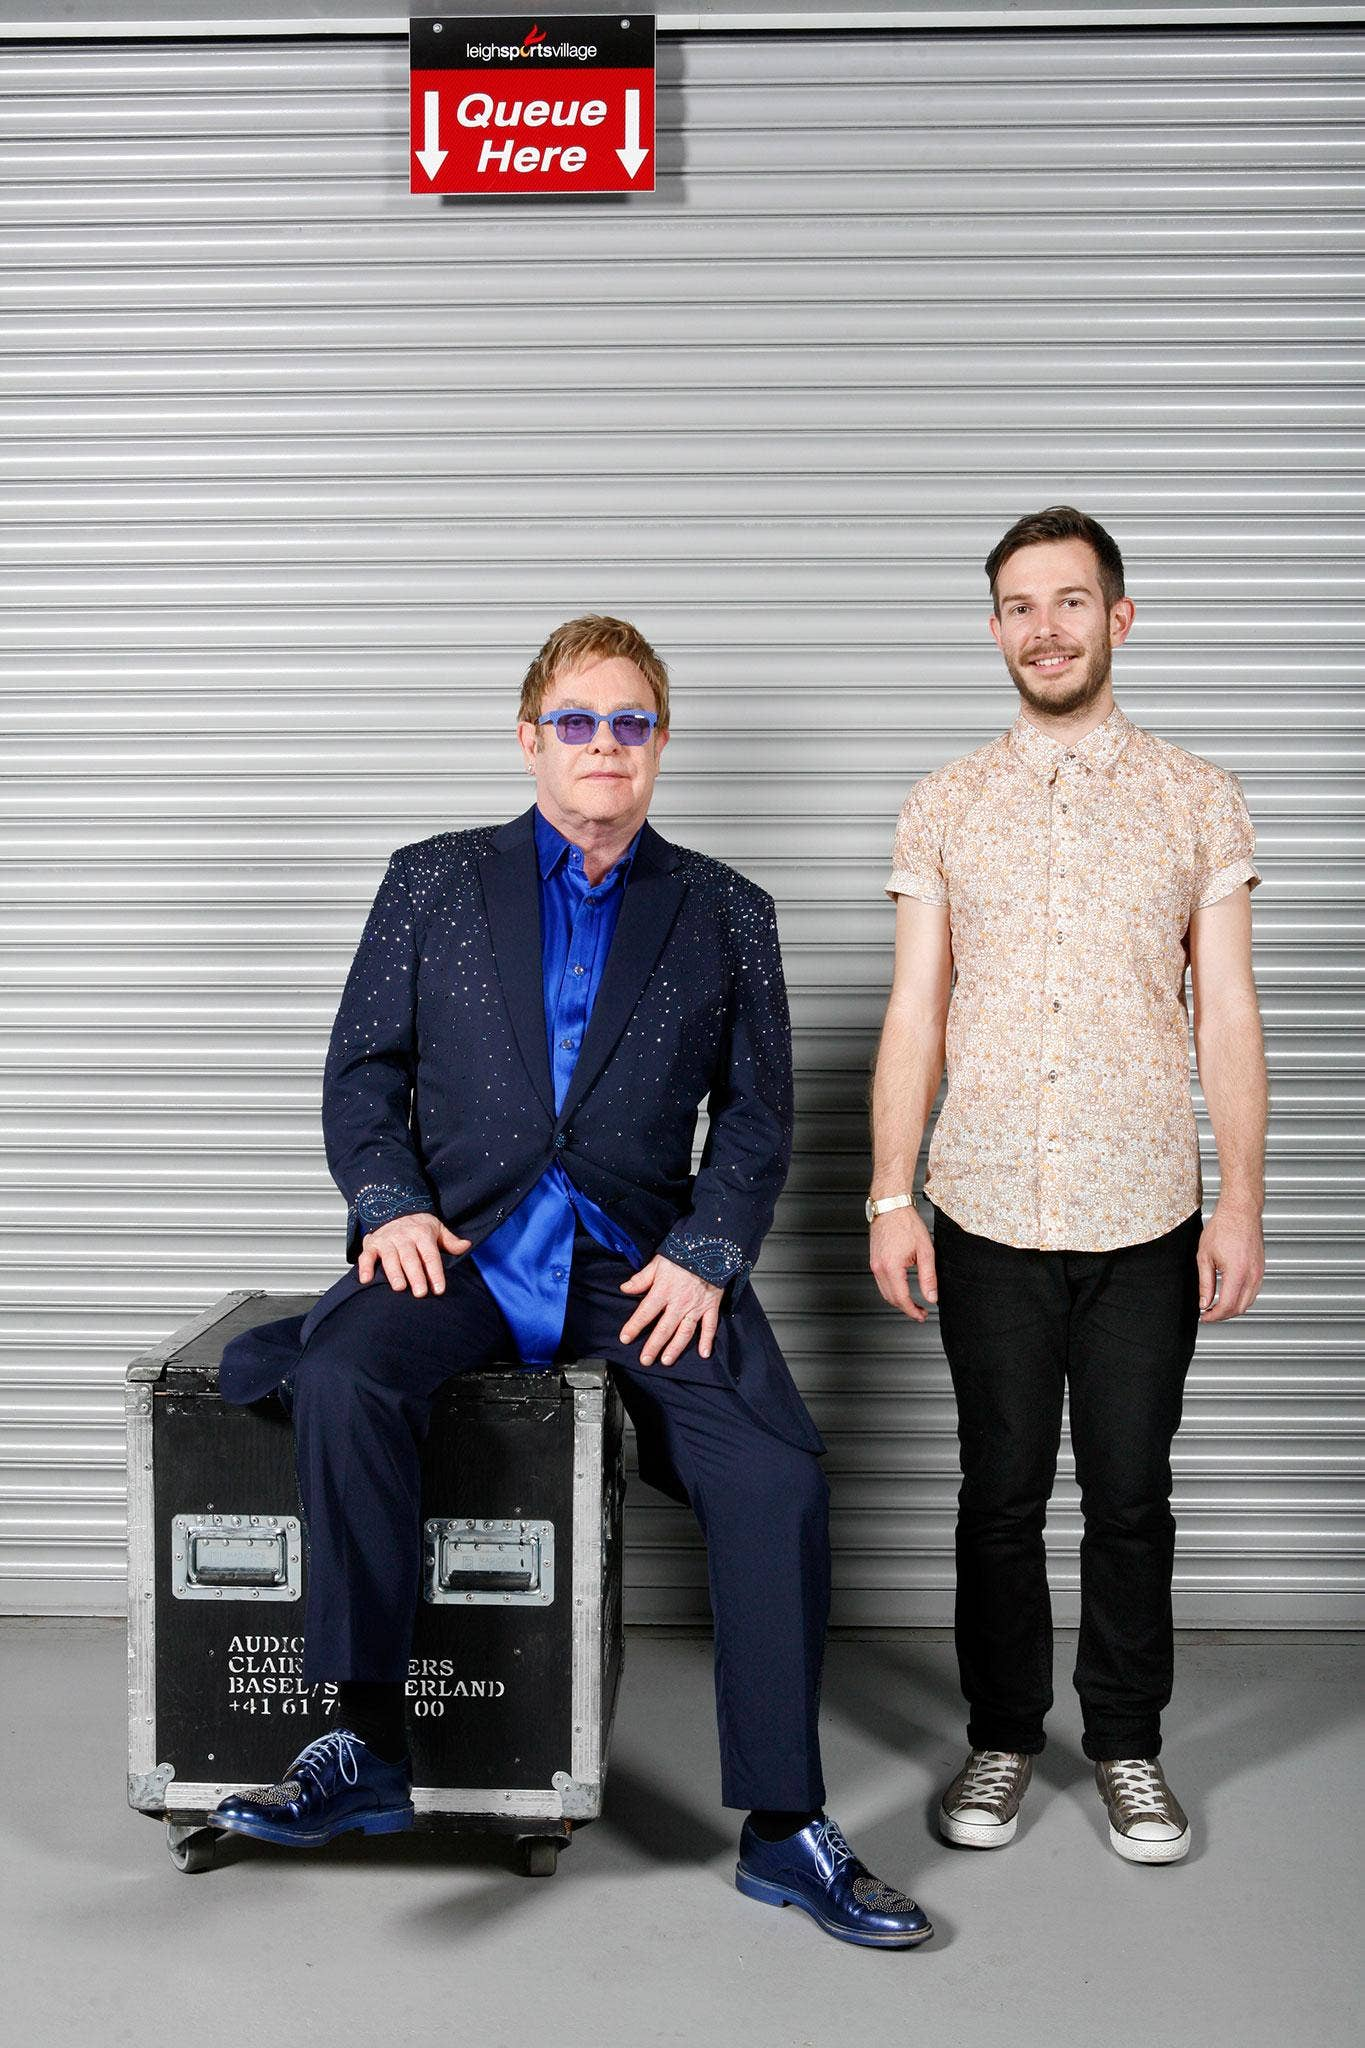 Elton John says of Thomas: 'He's a real character, a snappy dresser and is not afraid to send me up'